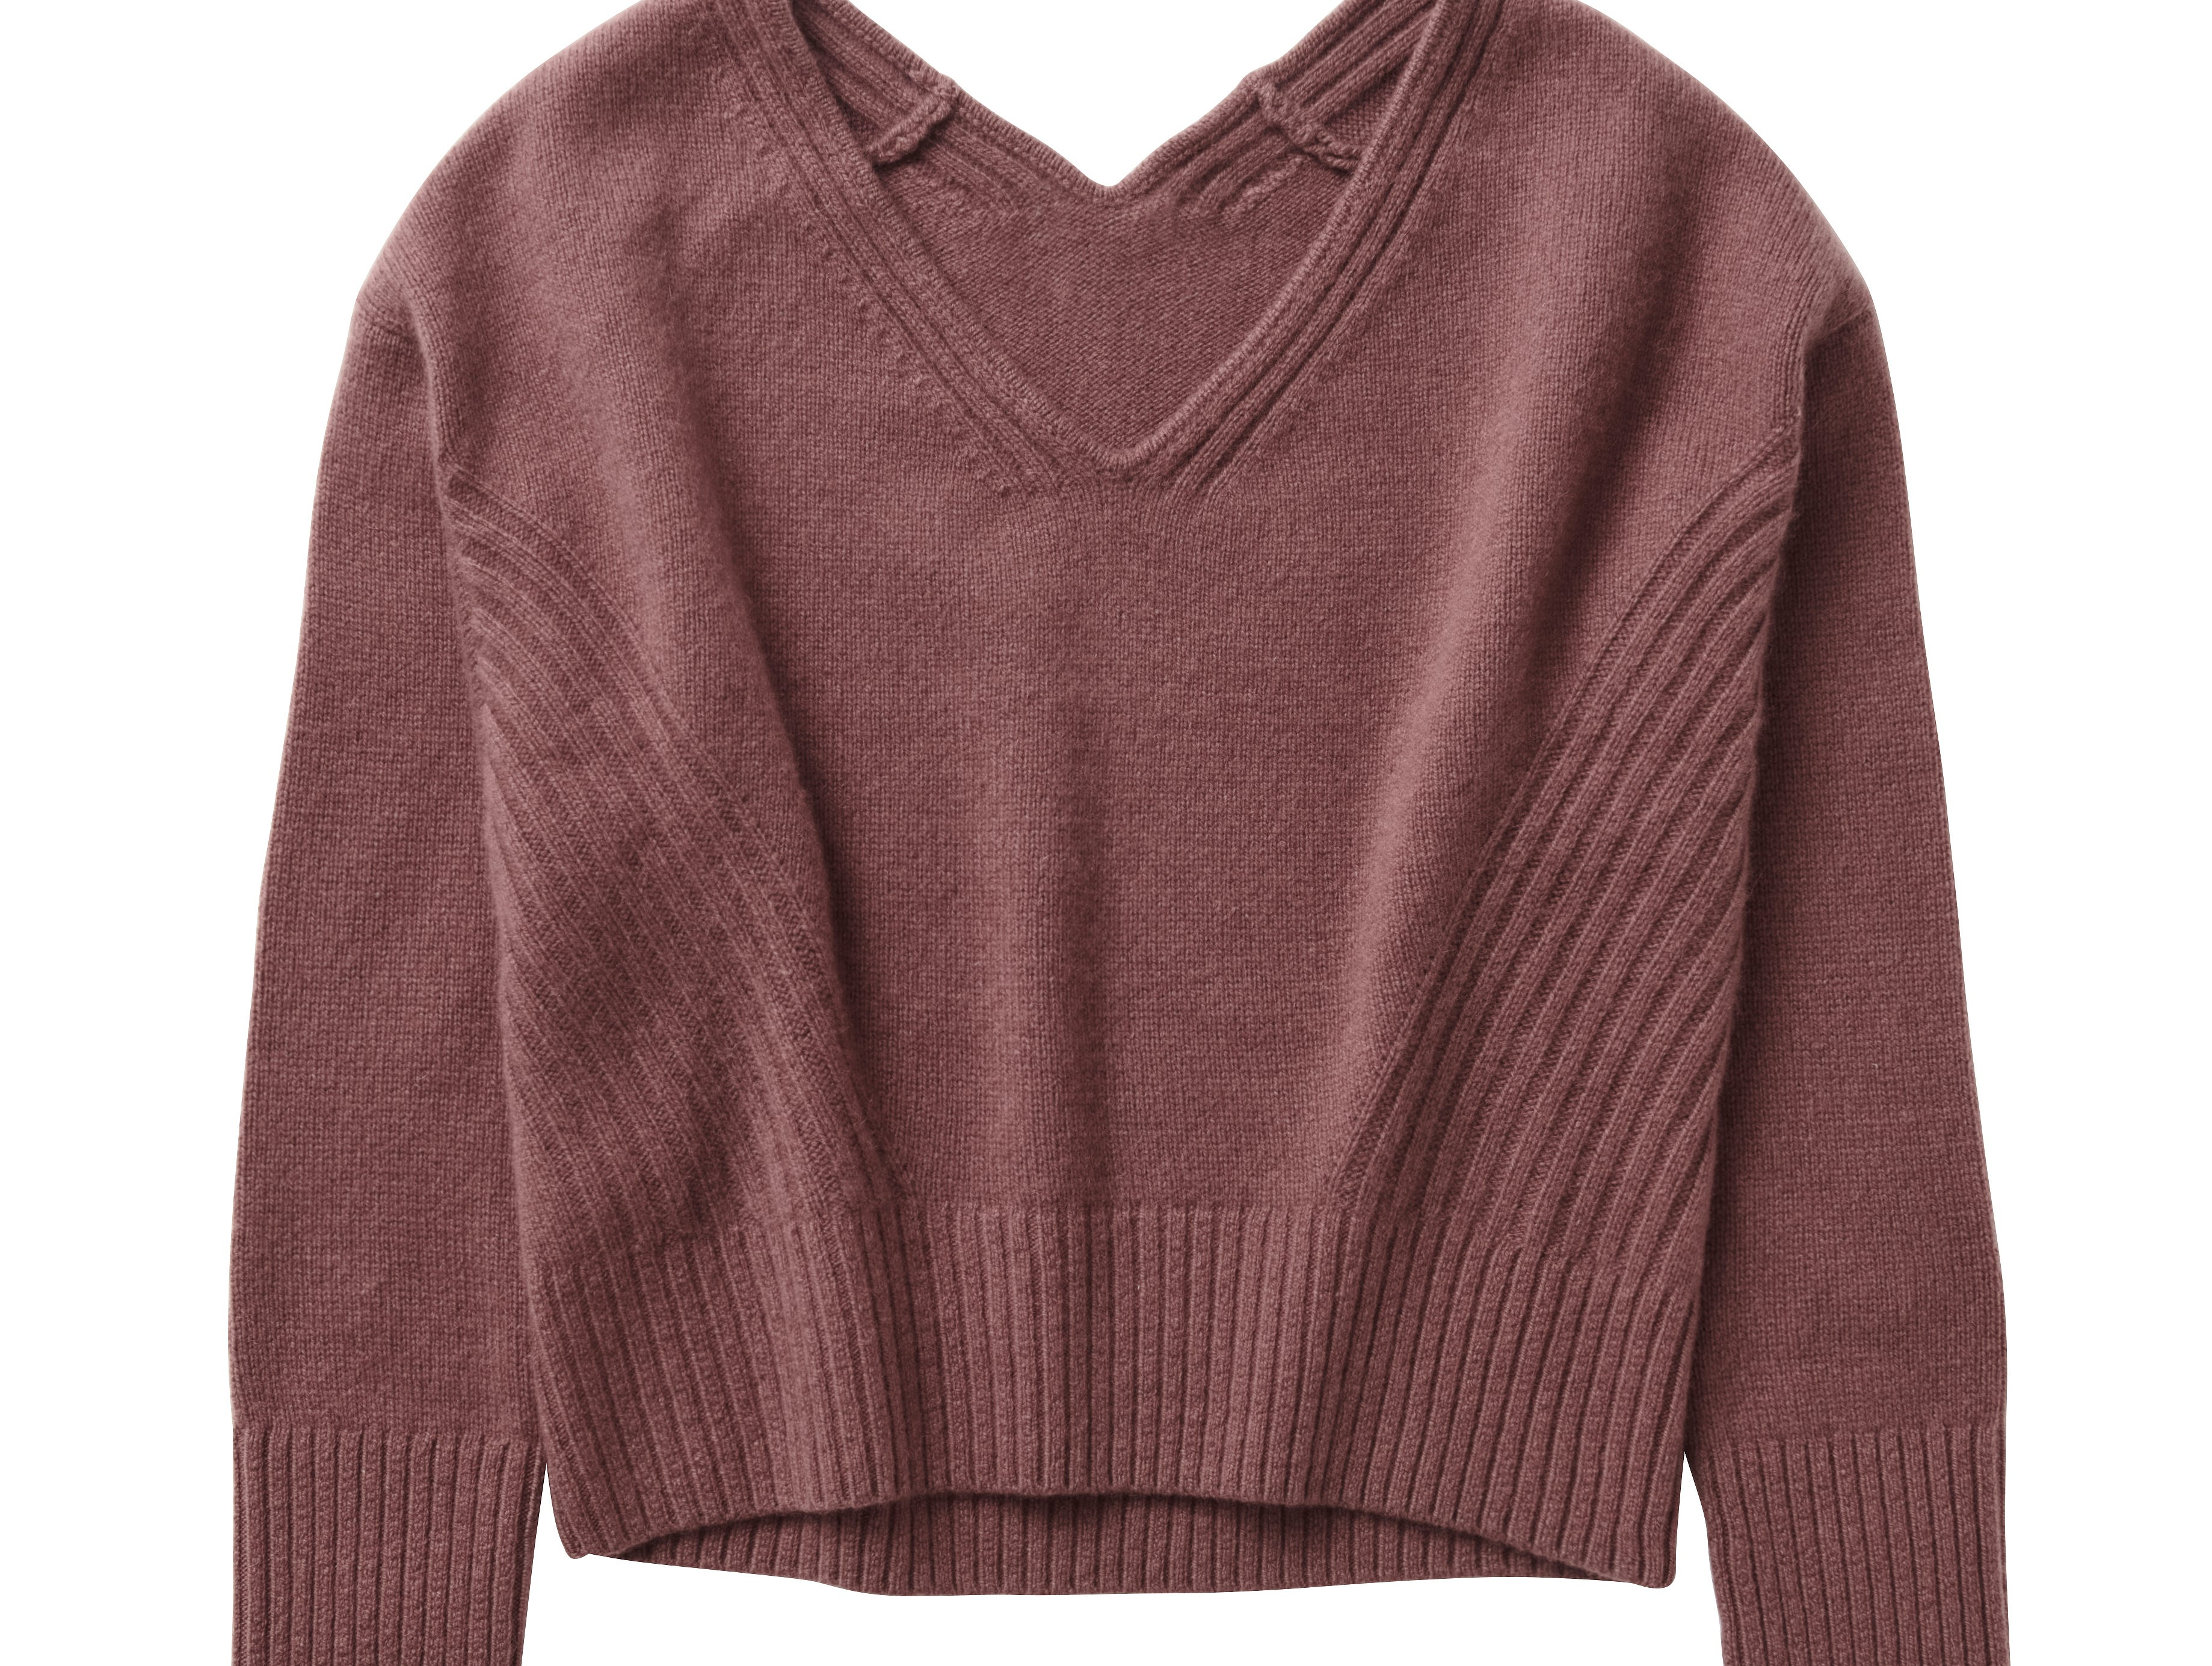 Also new in H&M's Conscious Exclusive collection for autumn and winter is clothing made from recycled cashmere. Here, a recycled cashmere sweater priced at $59.99.